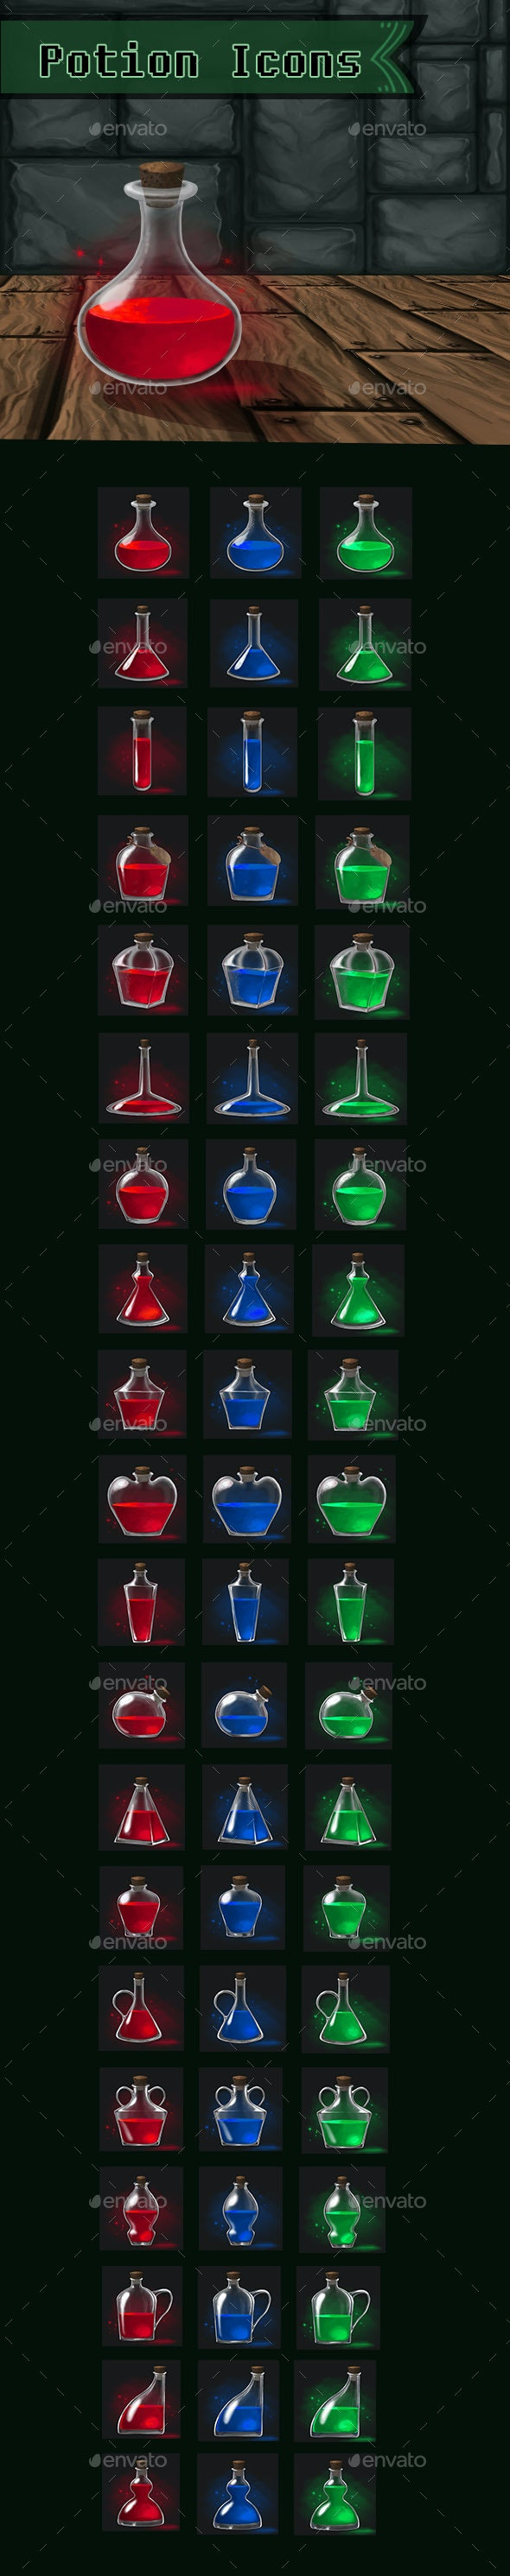 60 Potion icons - Miscellaneous Game Assets